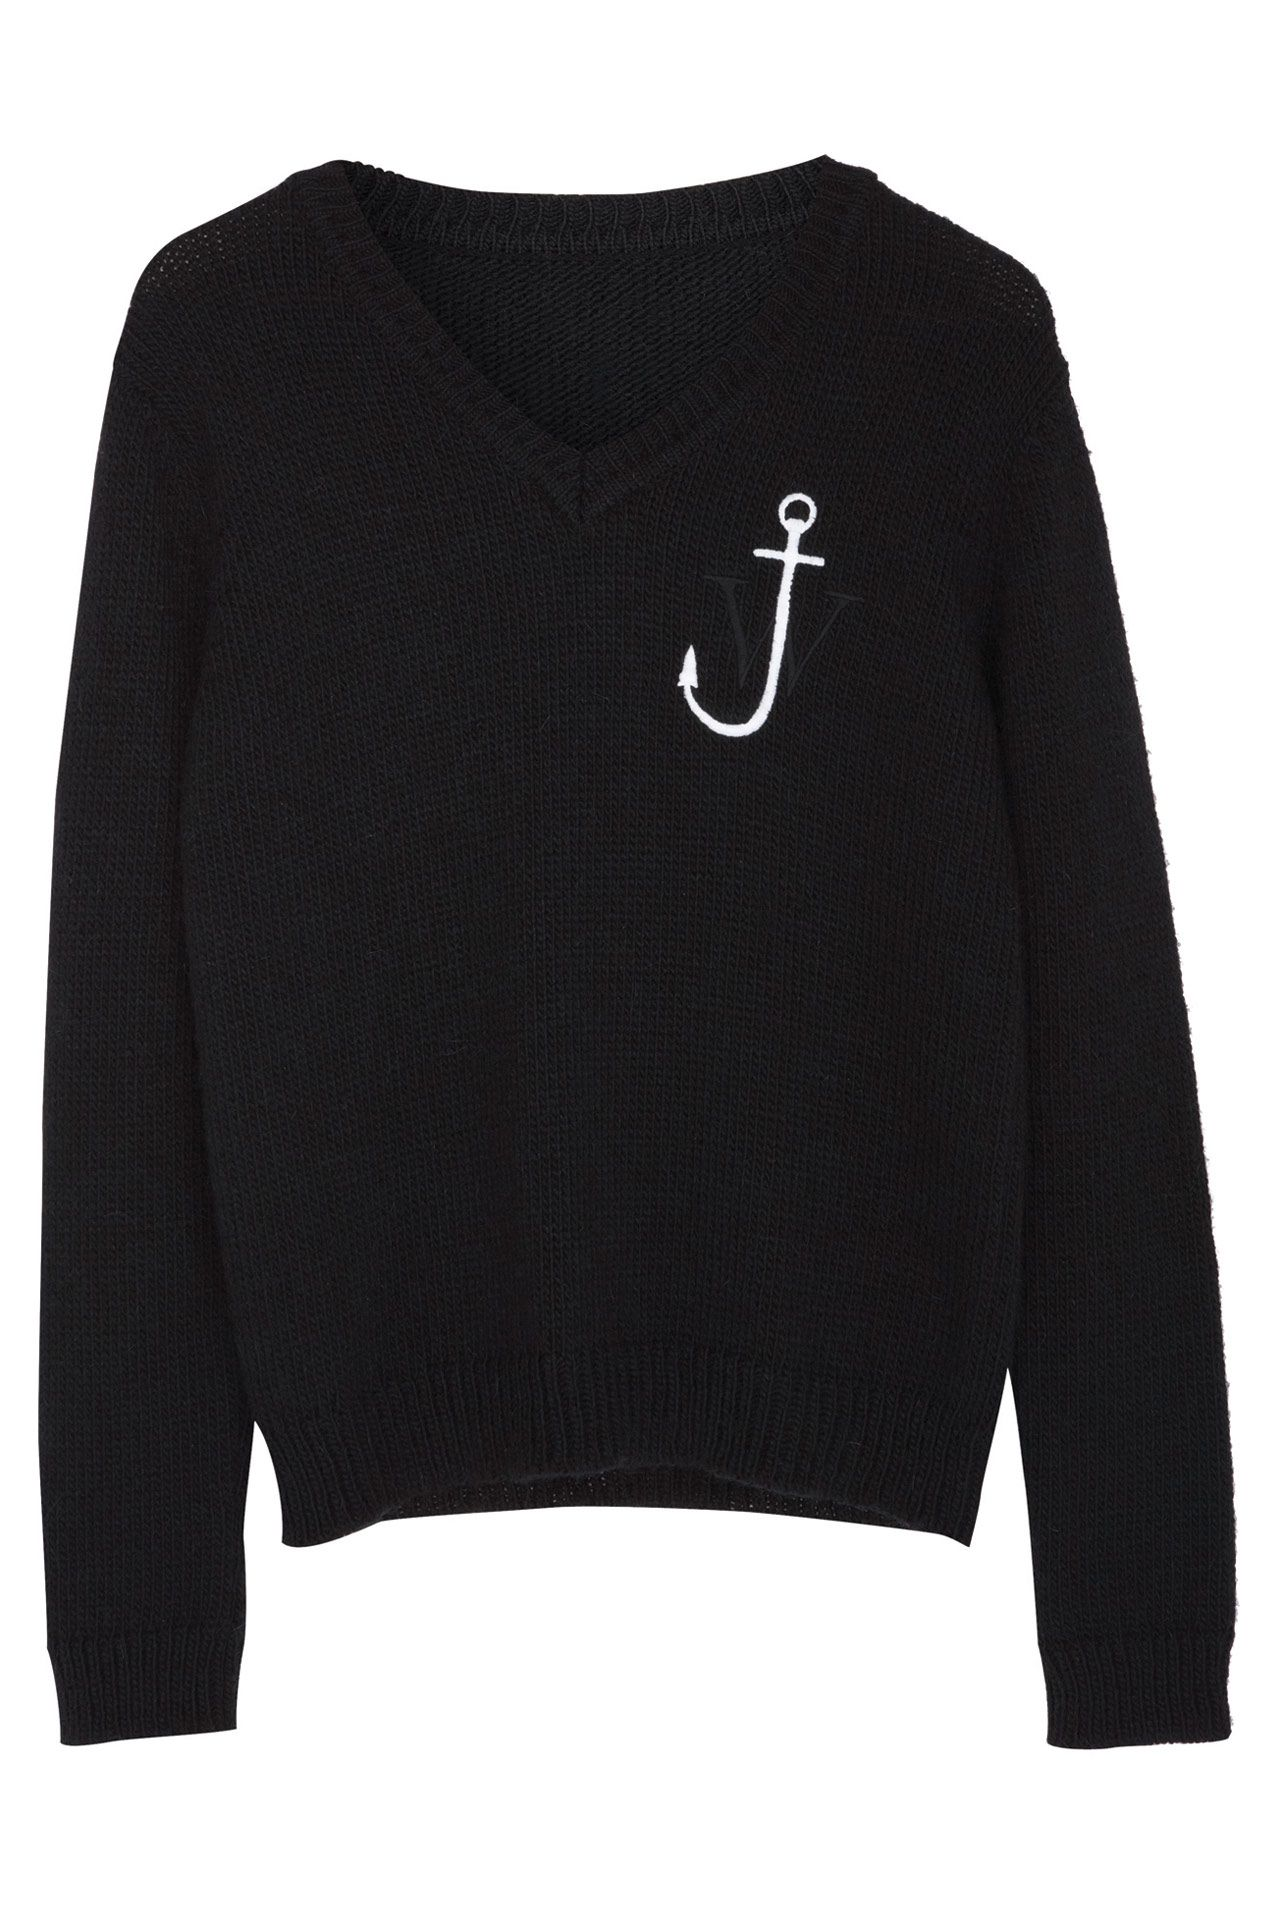 Peep the Full JW Anderson for Topshop Collection | INSPIRED